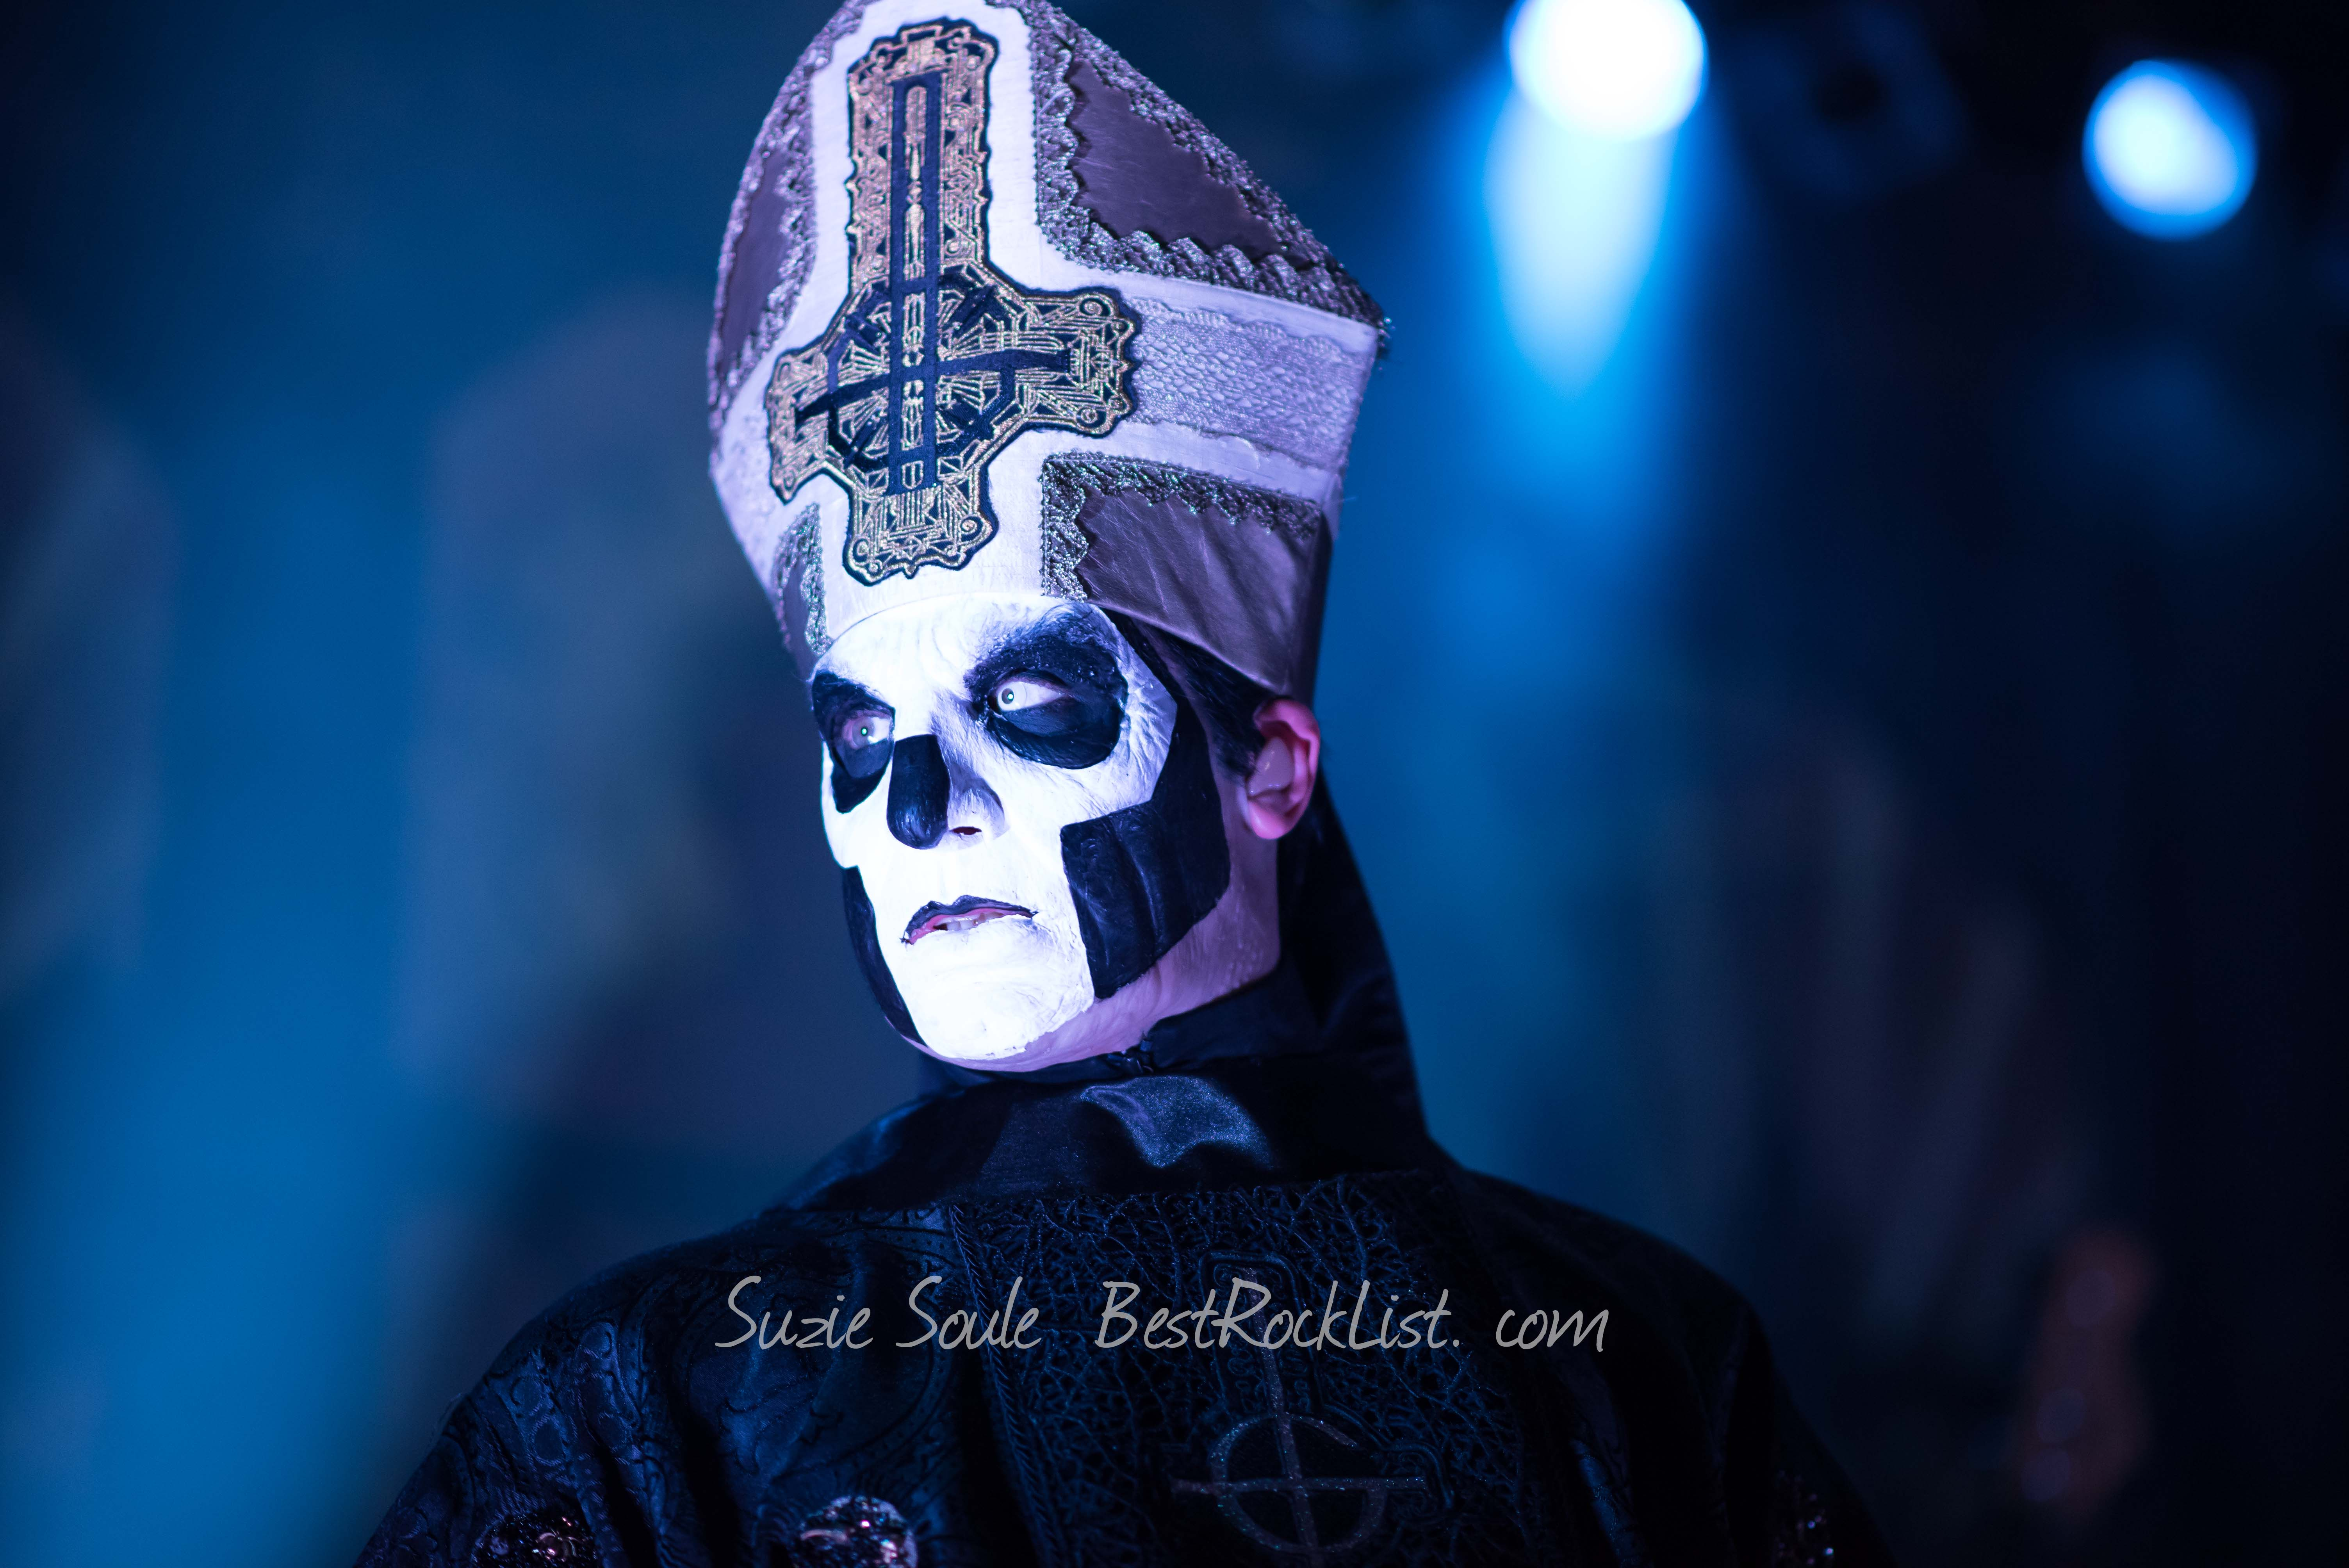 Ghost band photos Archives - bestrocklist.com